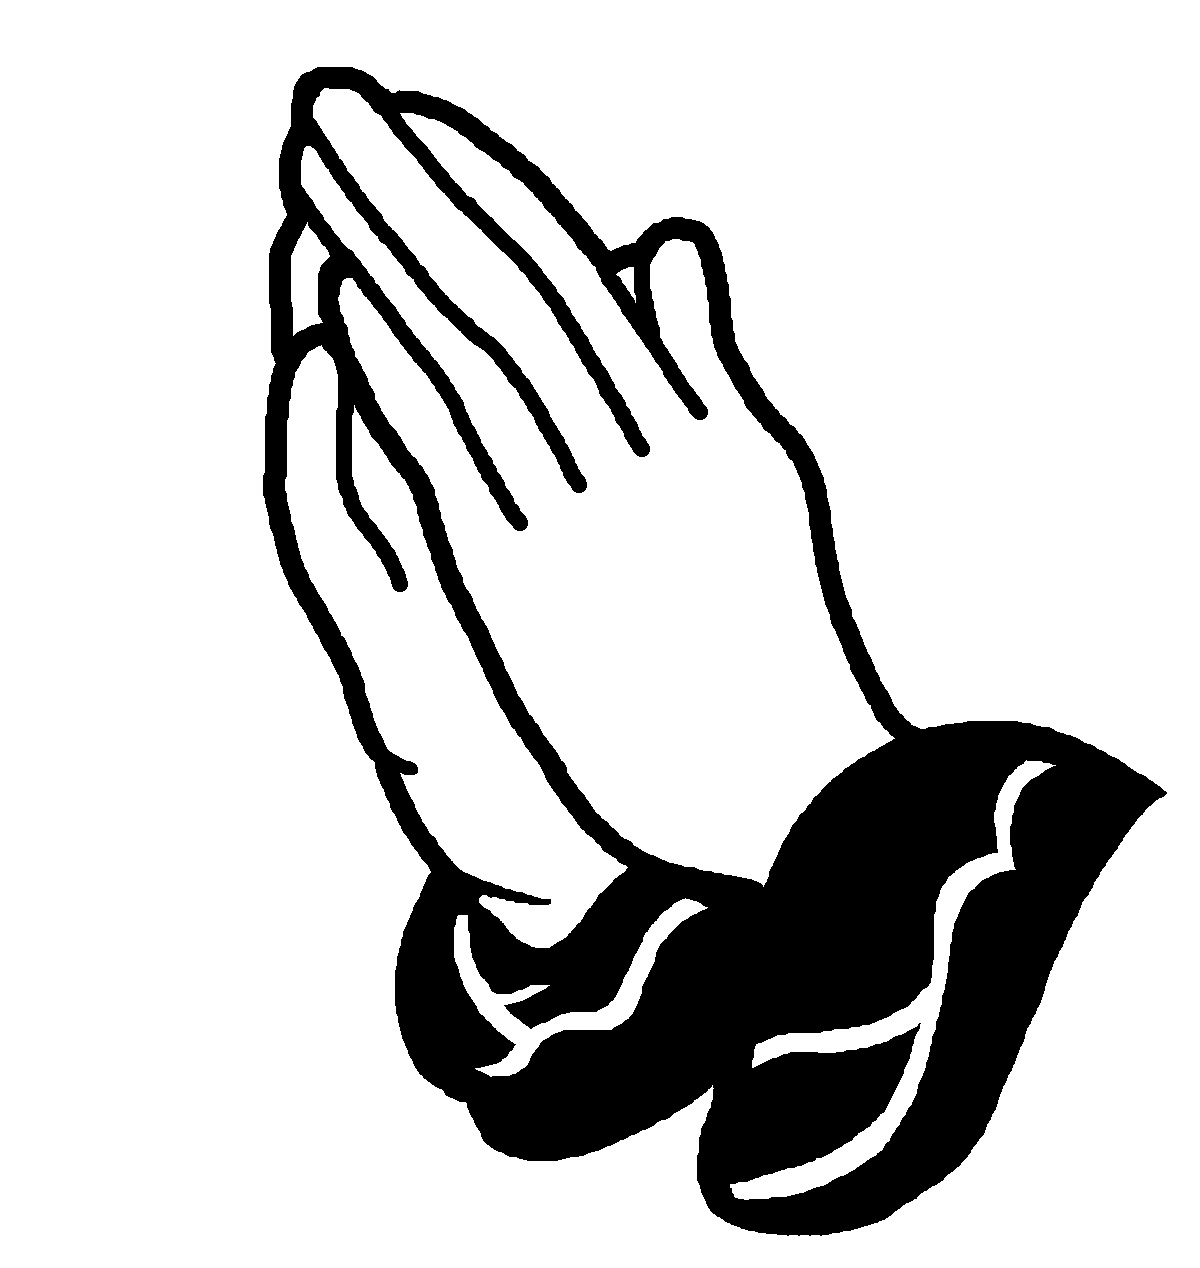 praying hands clip art clipart panda free clipart images rh clipartpanda com prayer hands clip art praying hands clipart free